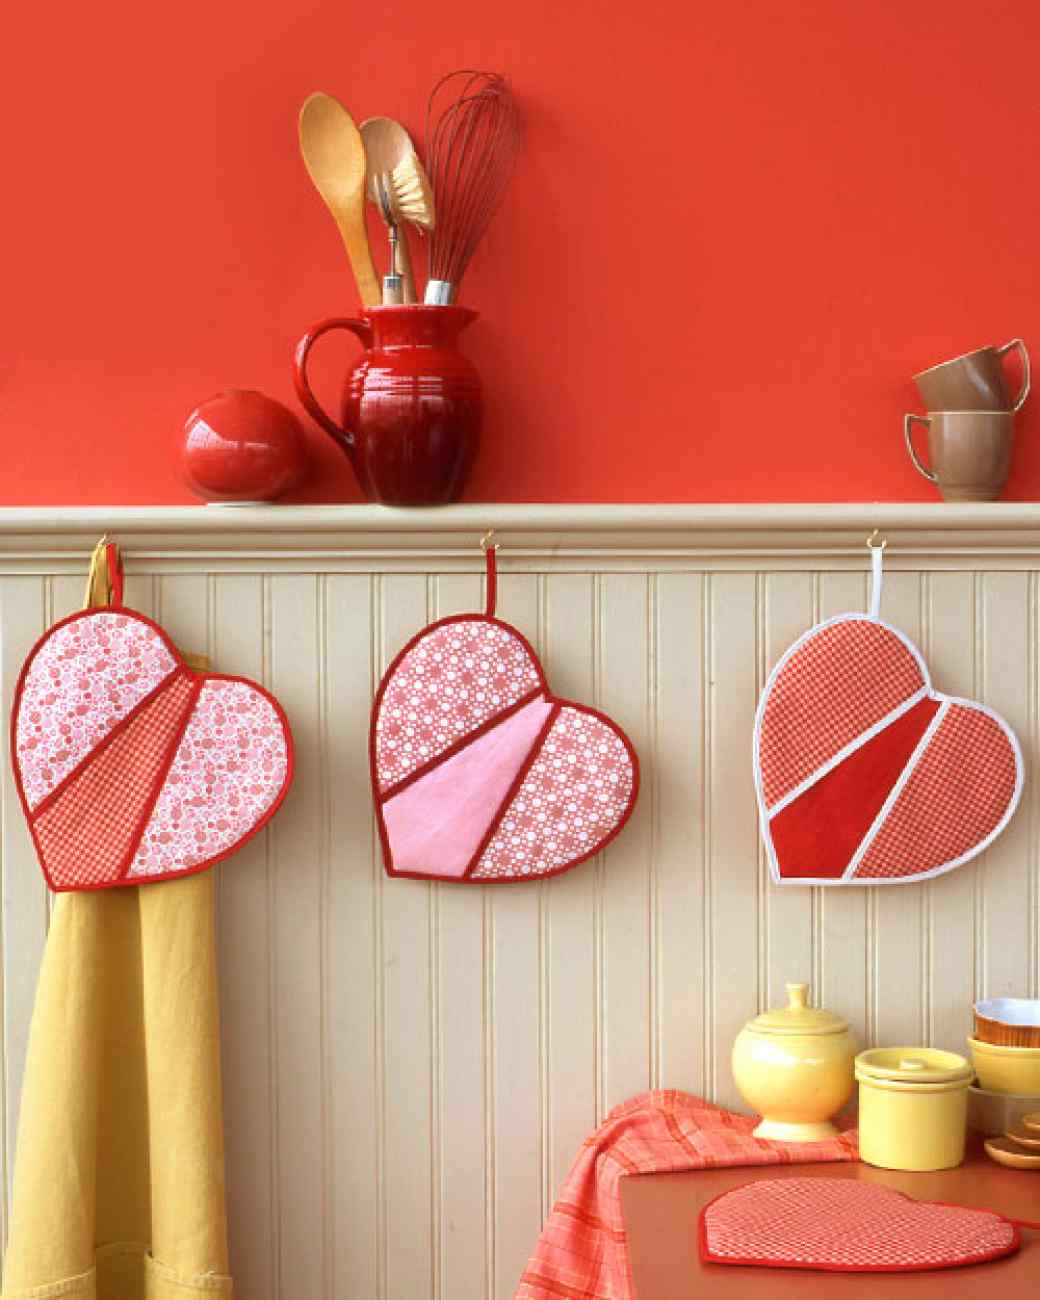 How to sewing Heart-Shaped Pot Holders